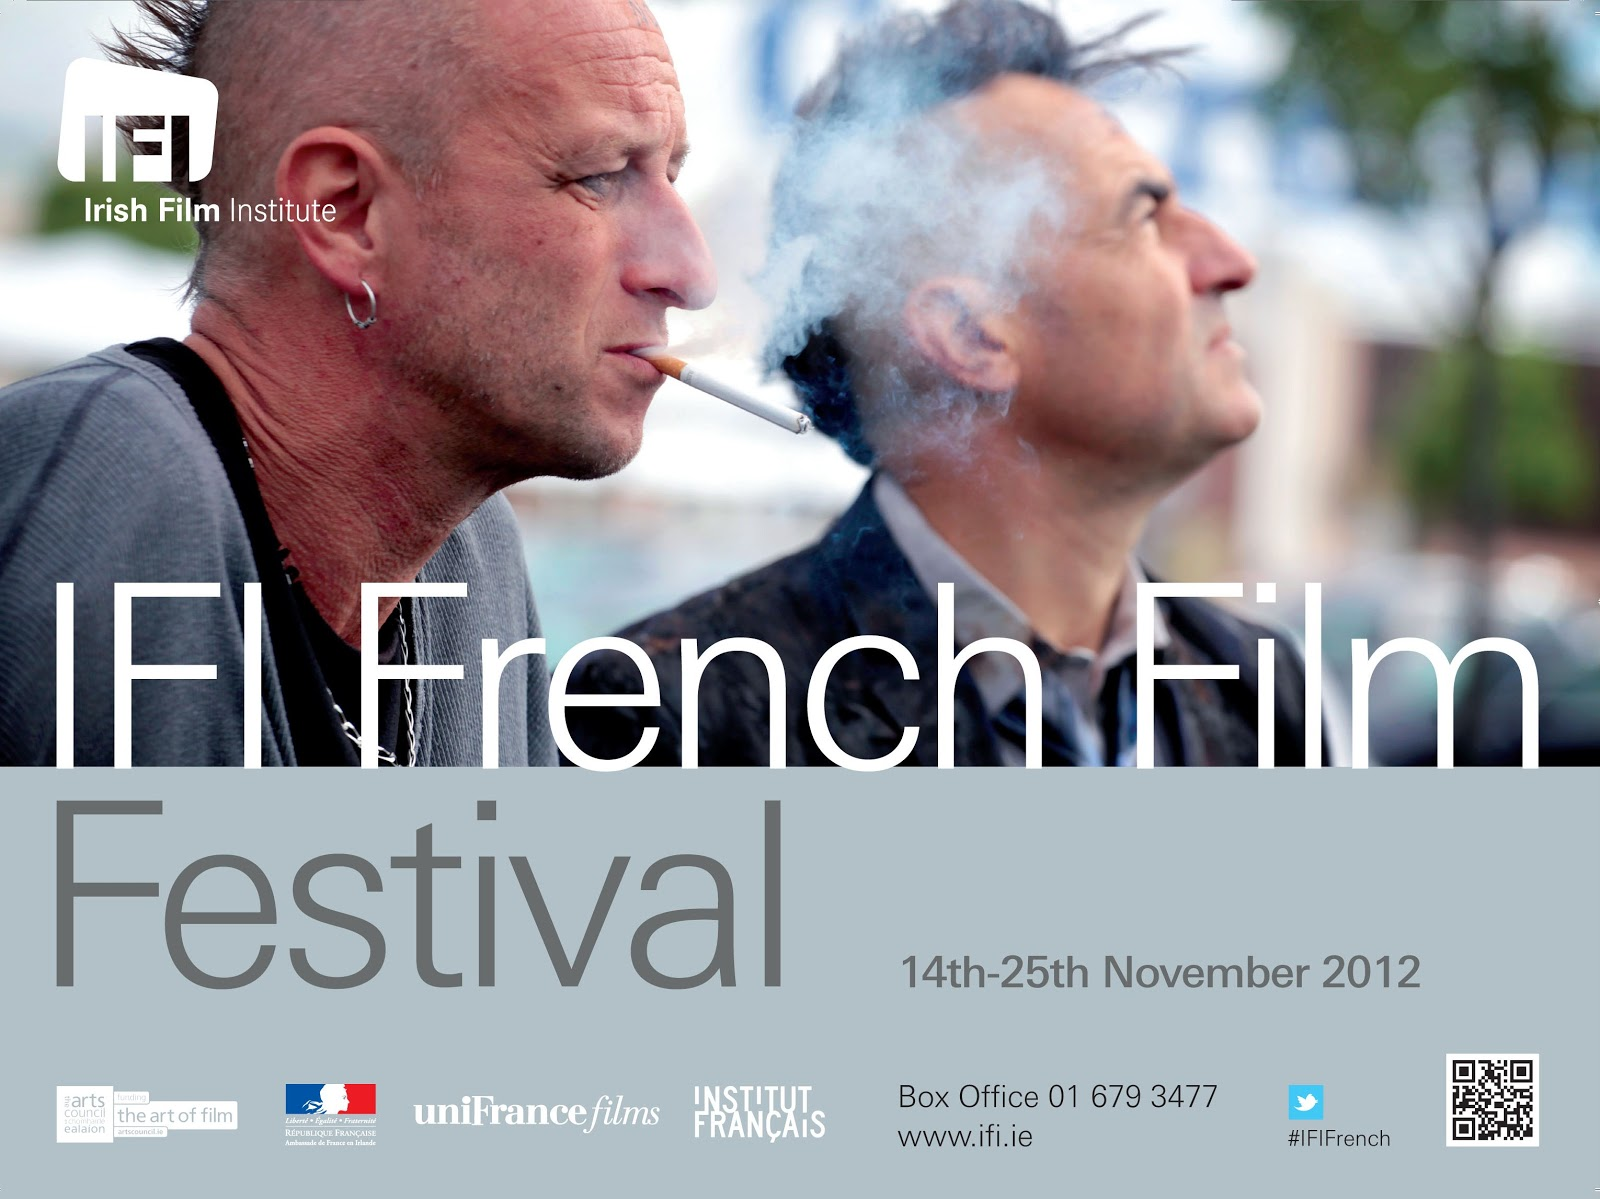 http://4.bp.blogspot.com/-aUiqPhO4H0s/UJQOLhpEeOI/AAAAAAAABNQ/sEfNDKOeoqY/s1600/IFI+French+Film+Festival+2012.jpg